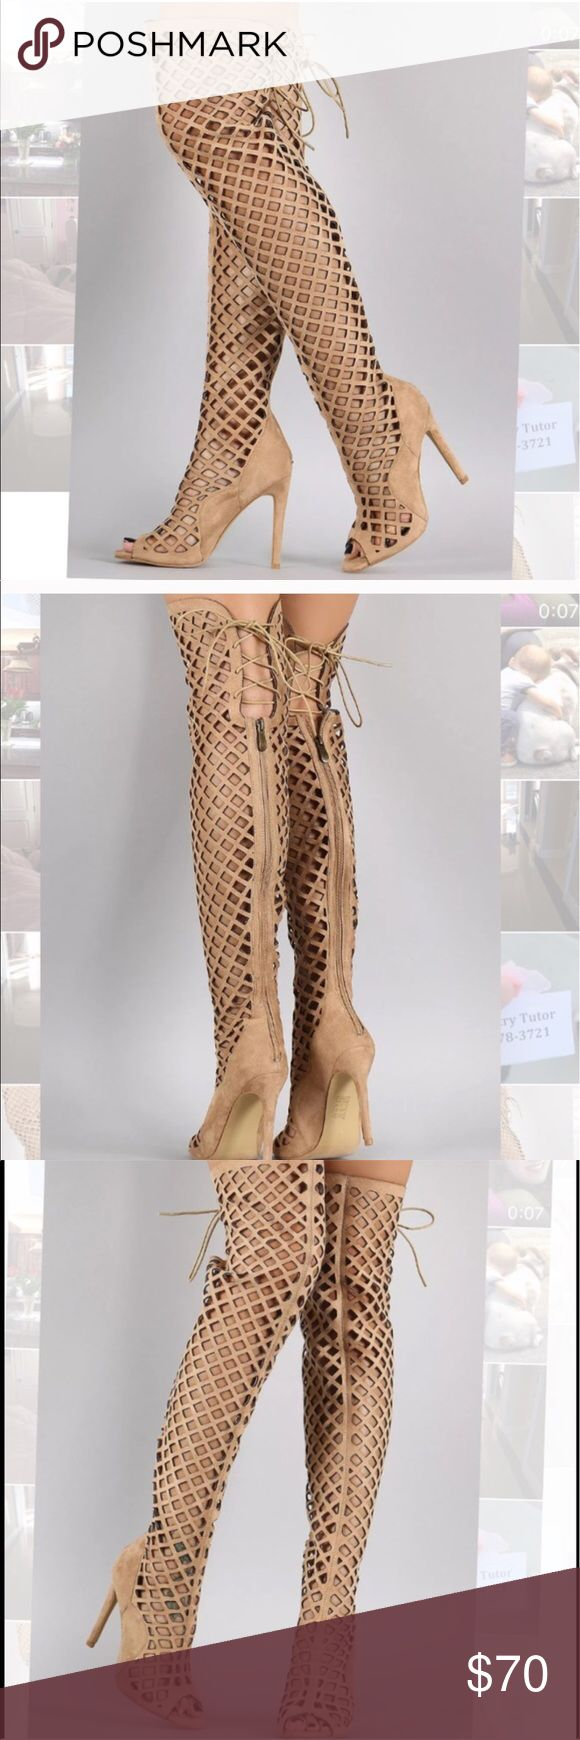 Nude boots Beautiful nude zip up boots perfect for the summer weather and night clubbing Shoes Heeled Boots